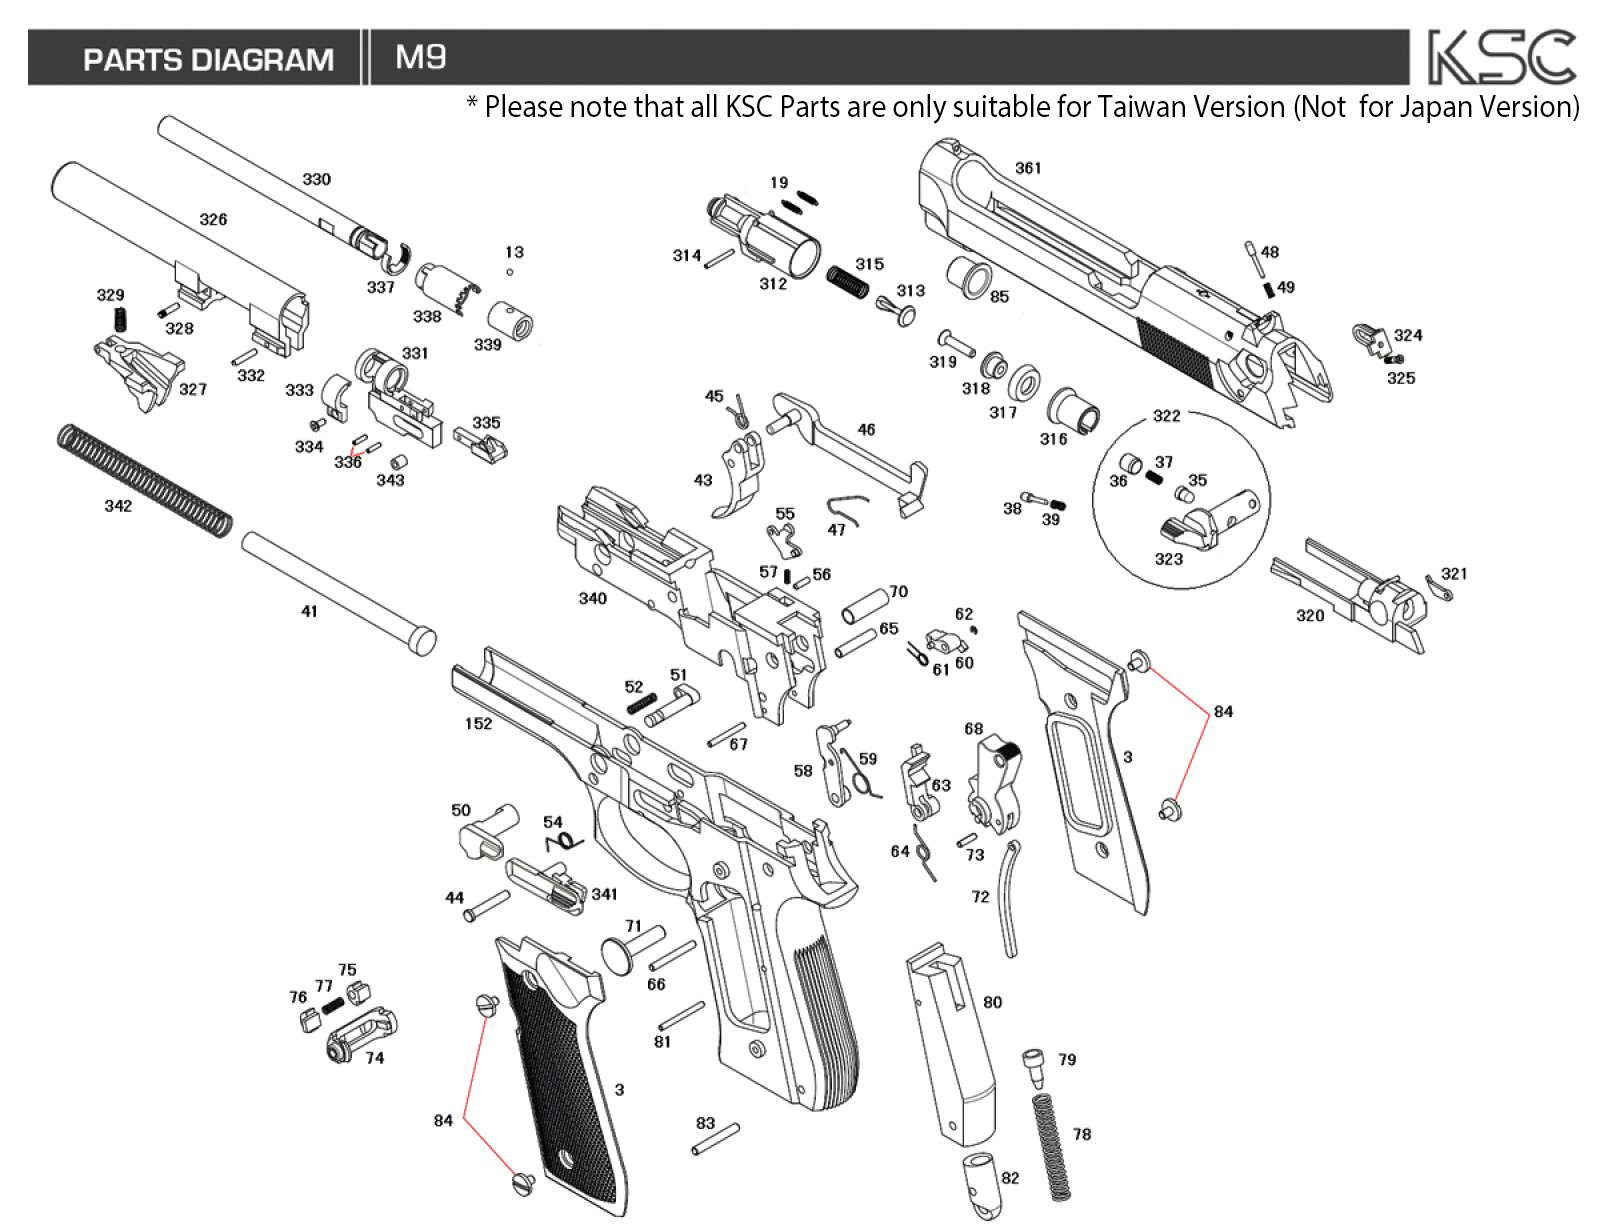 ksc m9 parts | rainbow8 company toshiba tv parts diagram